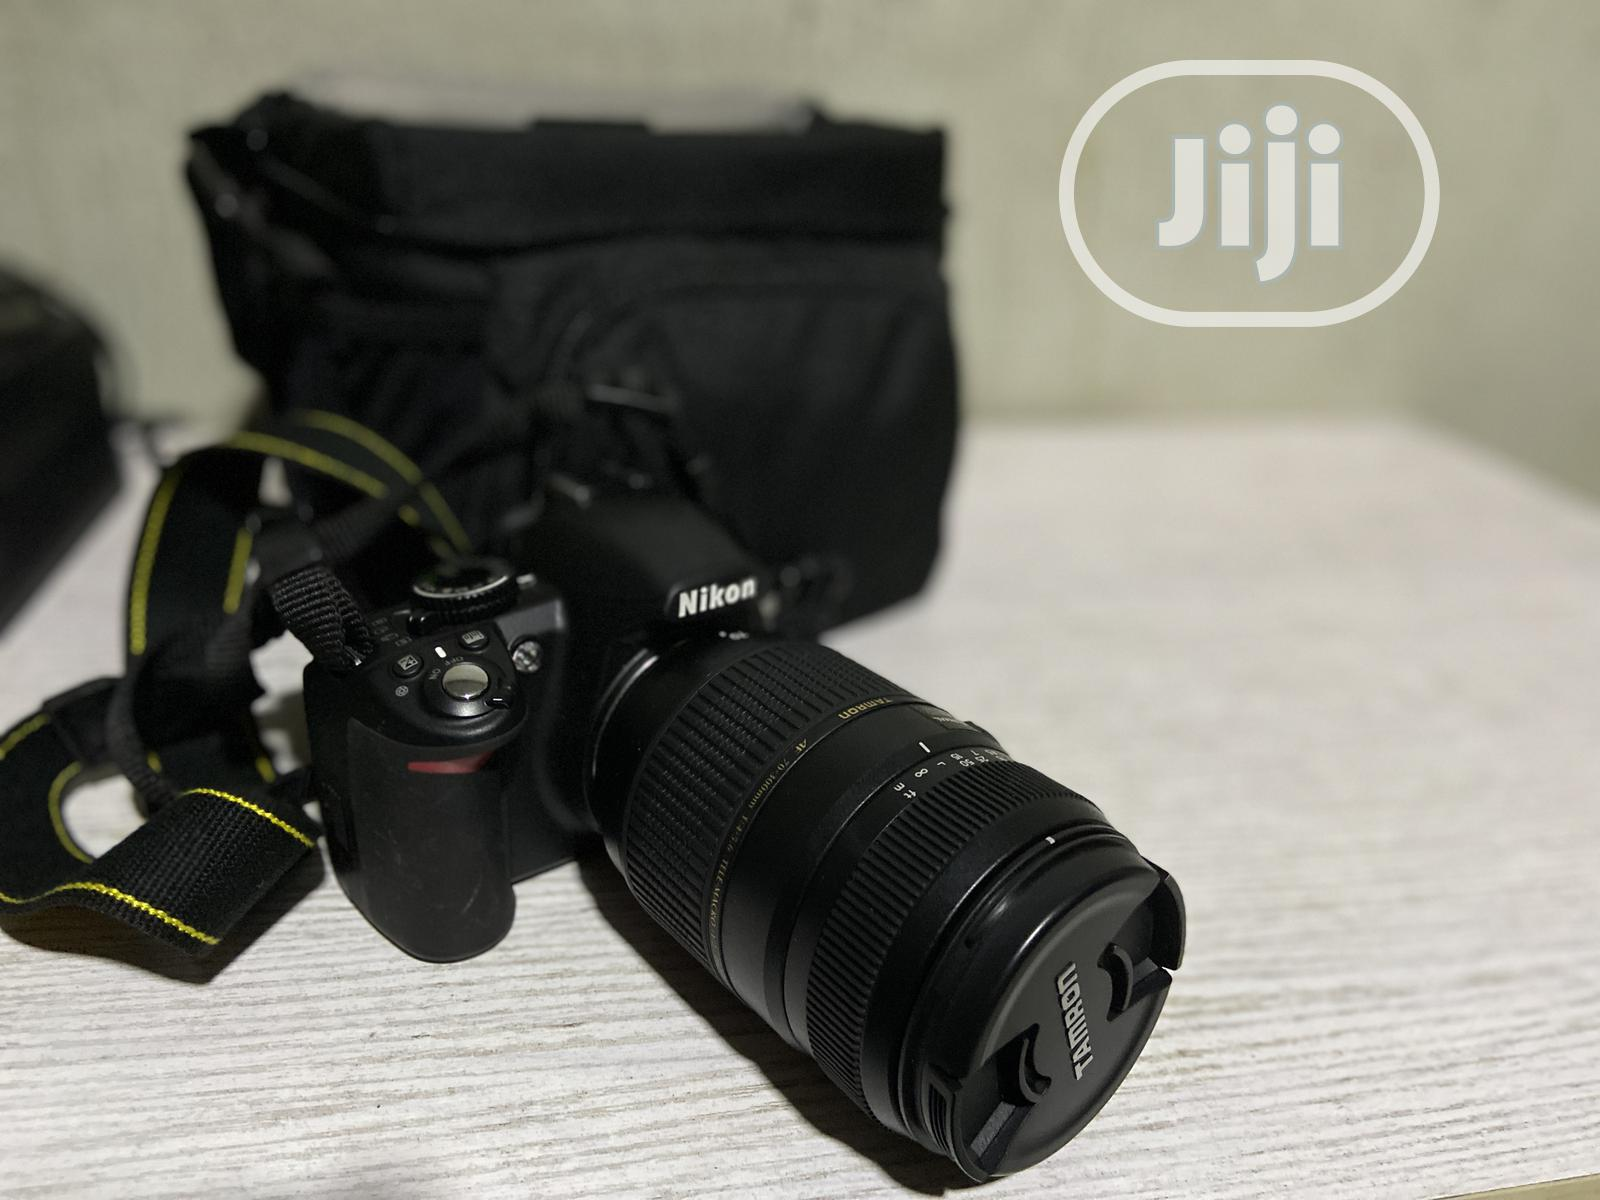 Nikon D3100 Camera With 70-300mm Lens